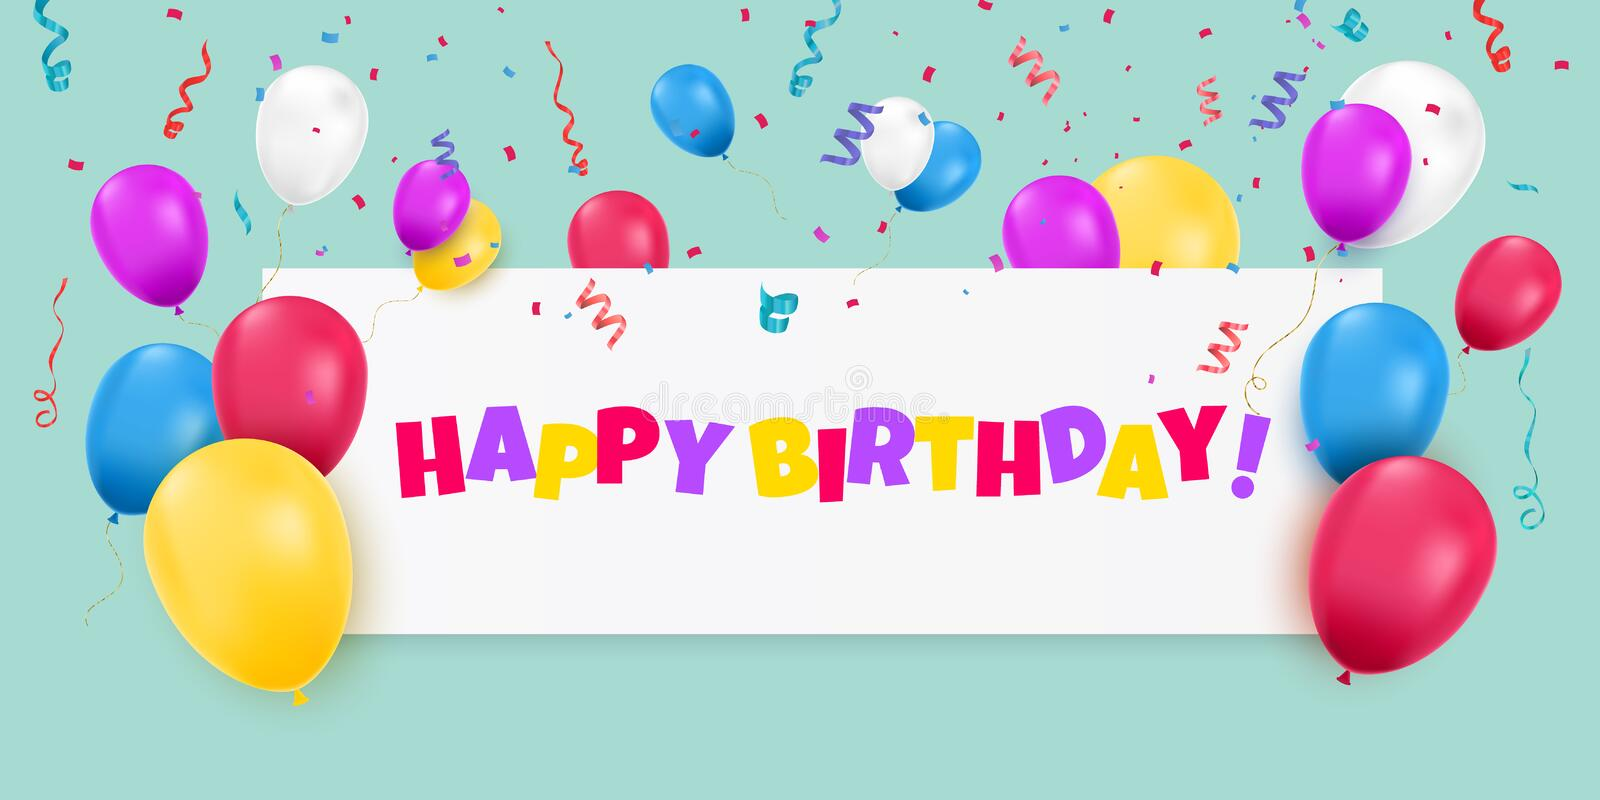 Happy Birthday banner with color balloons and confetti on blue background. royalty free illustration